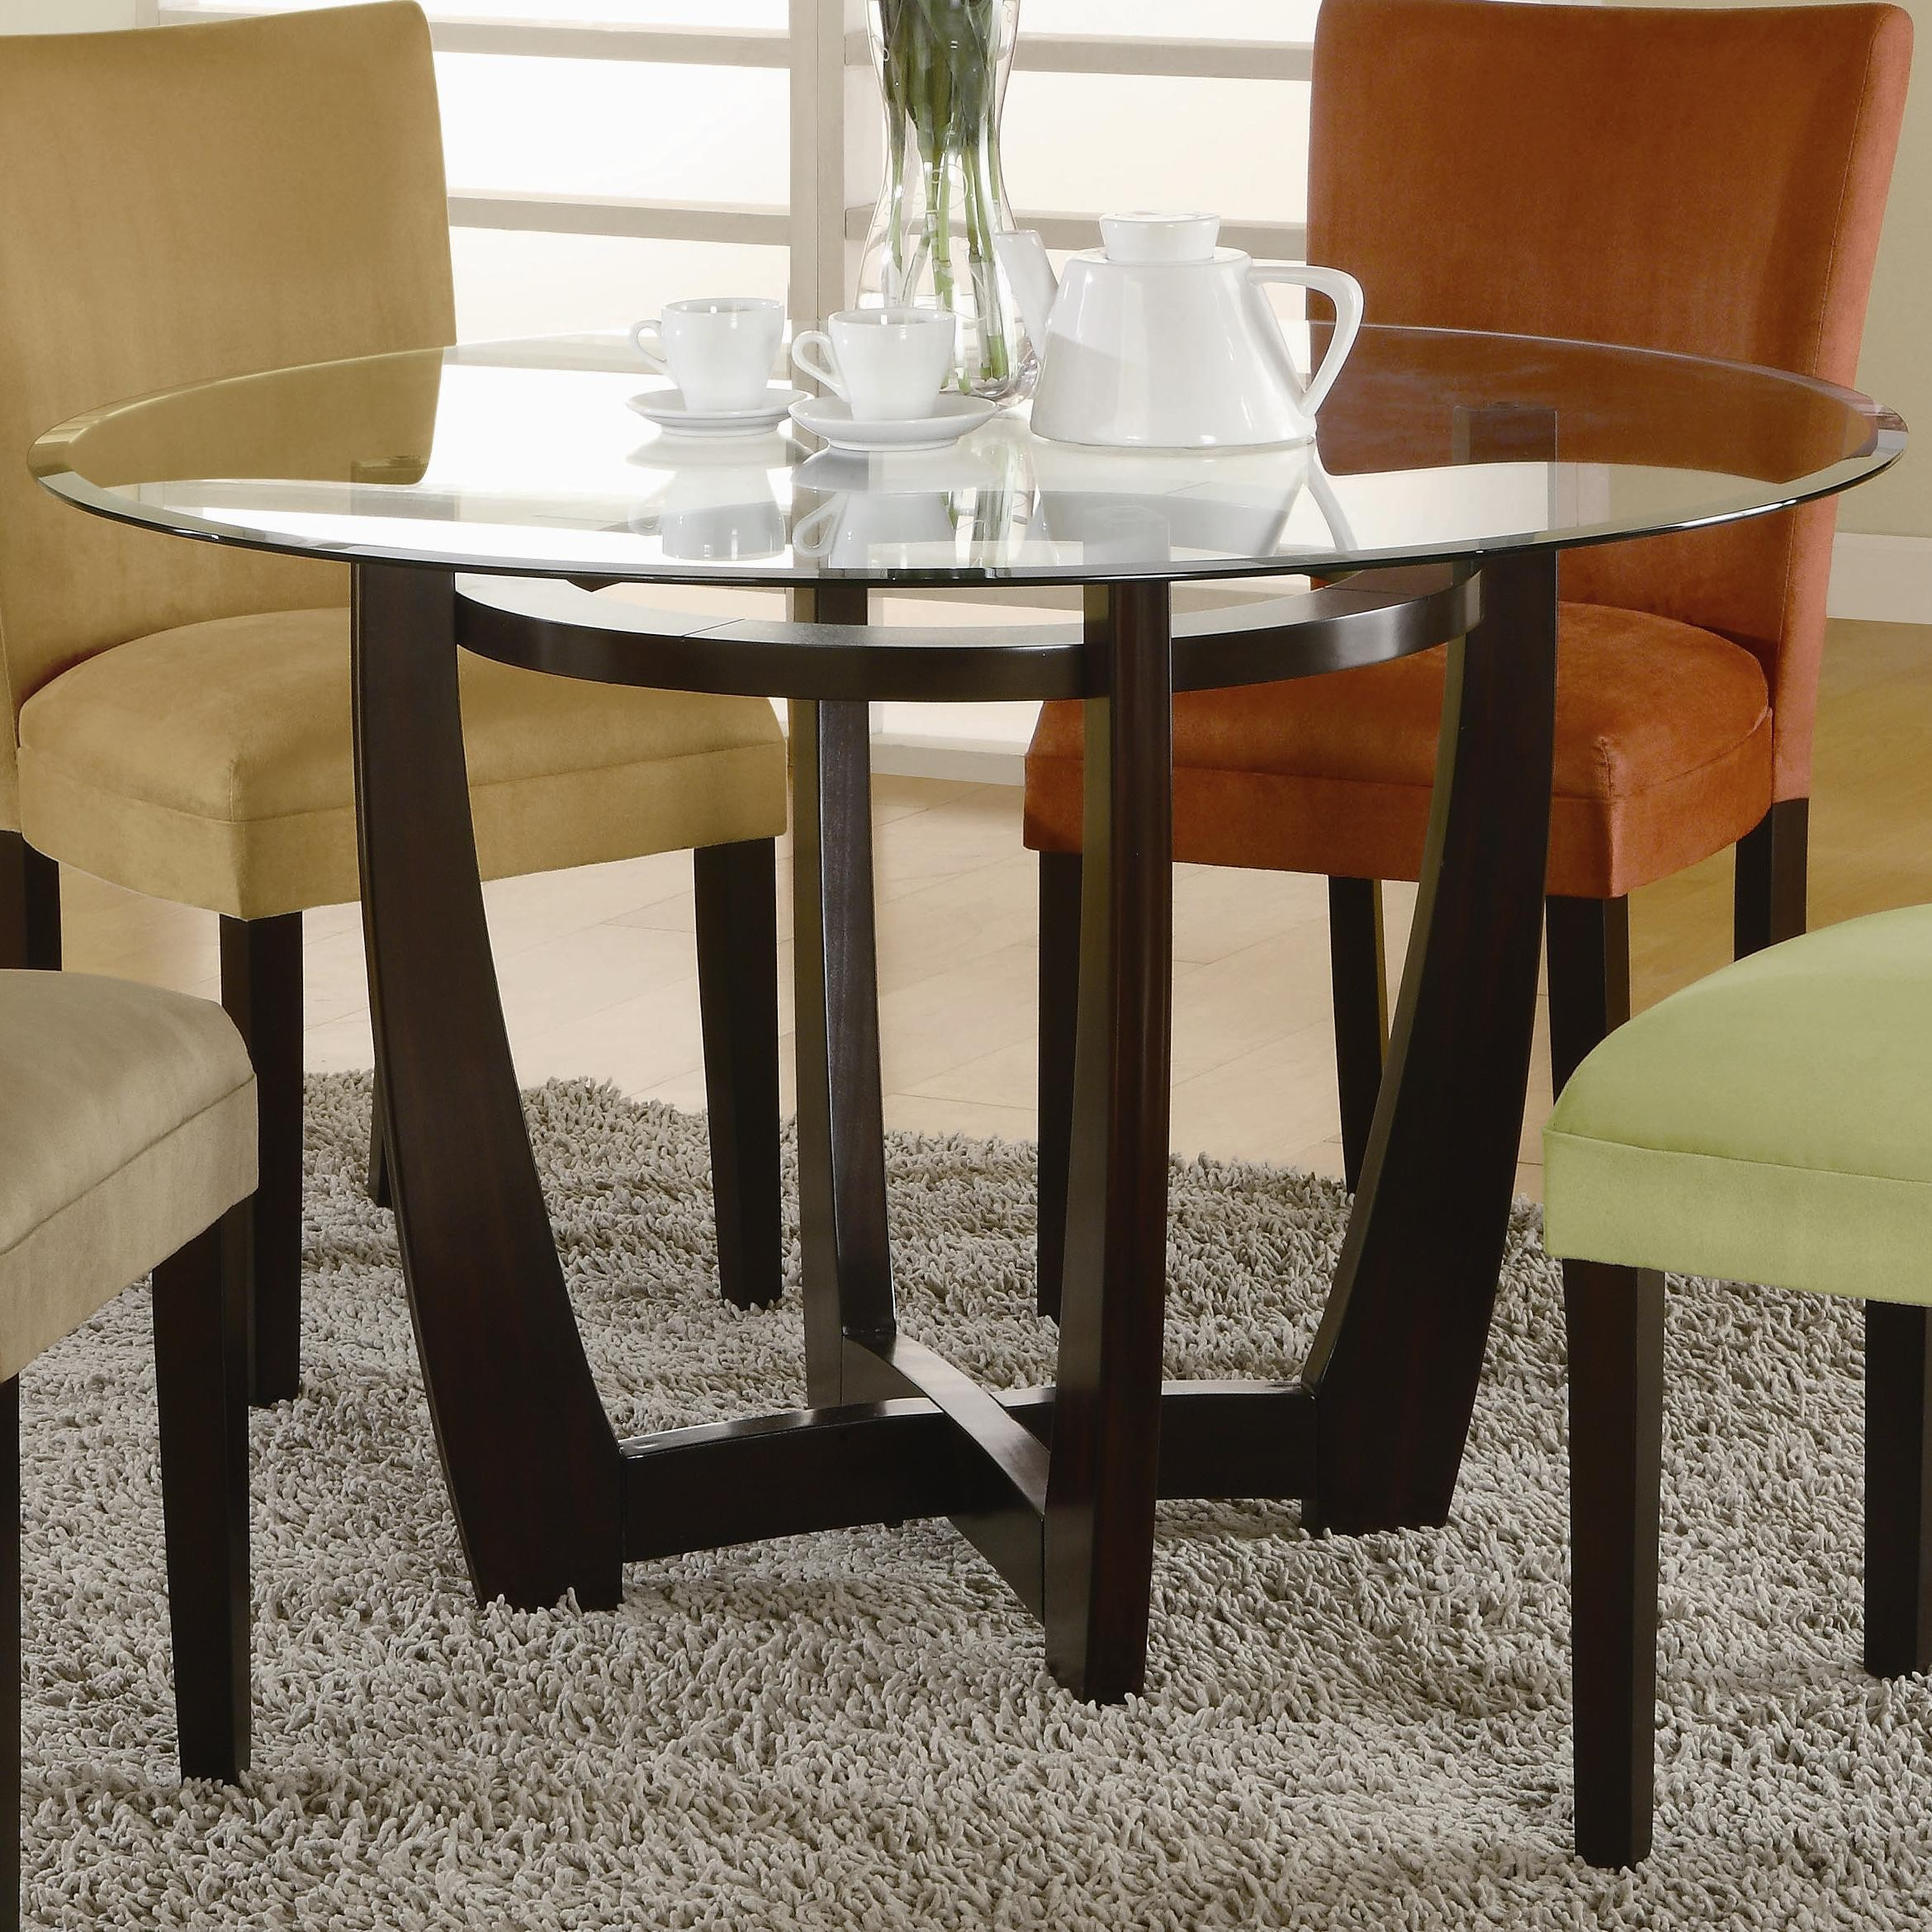 dining table bases for glass tops homesfeed. Black Bedroom Furniture Sets. Home Design Ideas